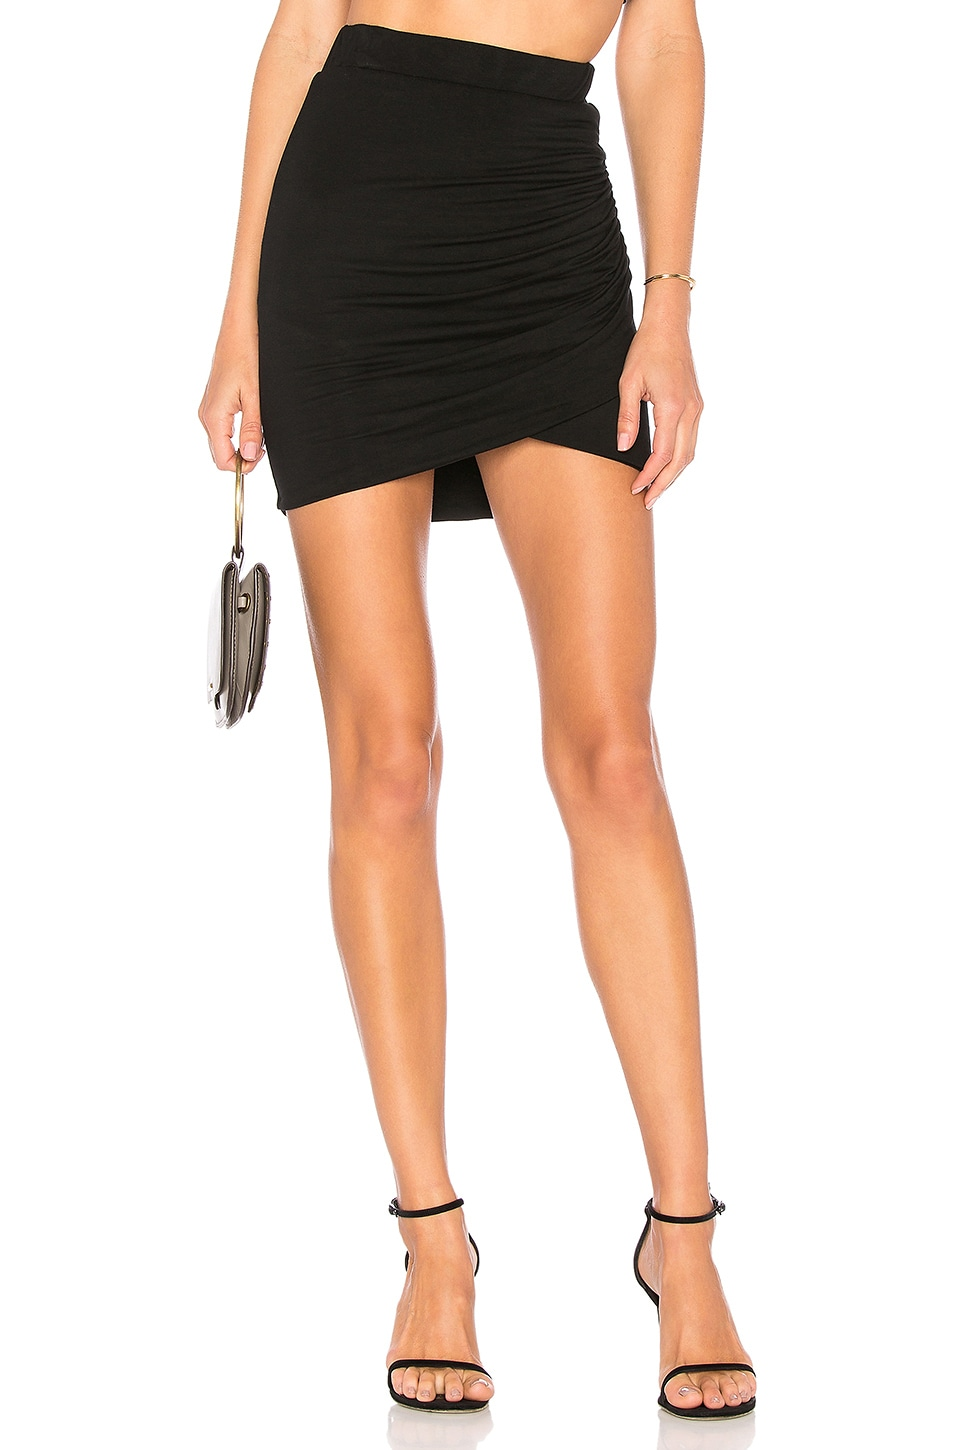 Lovers + Friends Voyage Skirt in Black